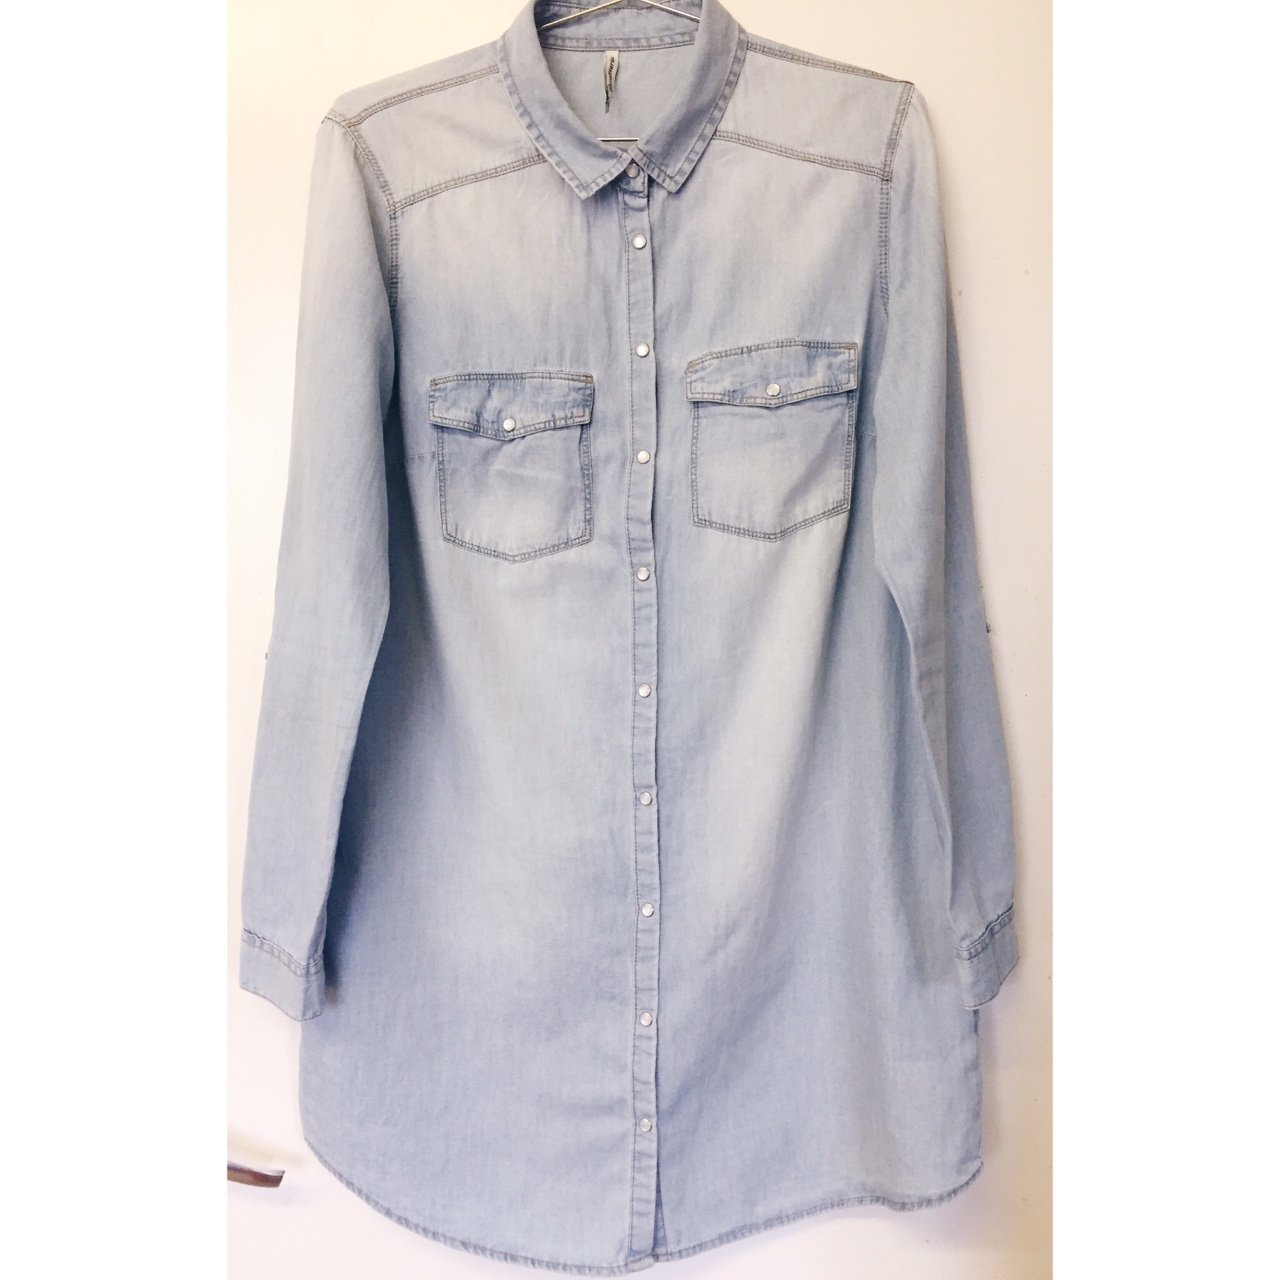 e9581b86c5 STRADIVARIUS pale blue jean shirt. Can be worn as an top. - Depop